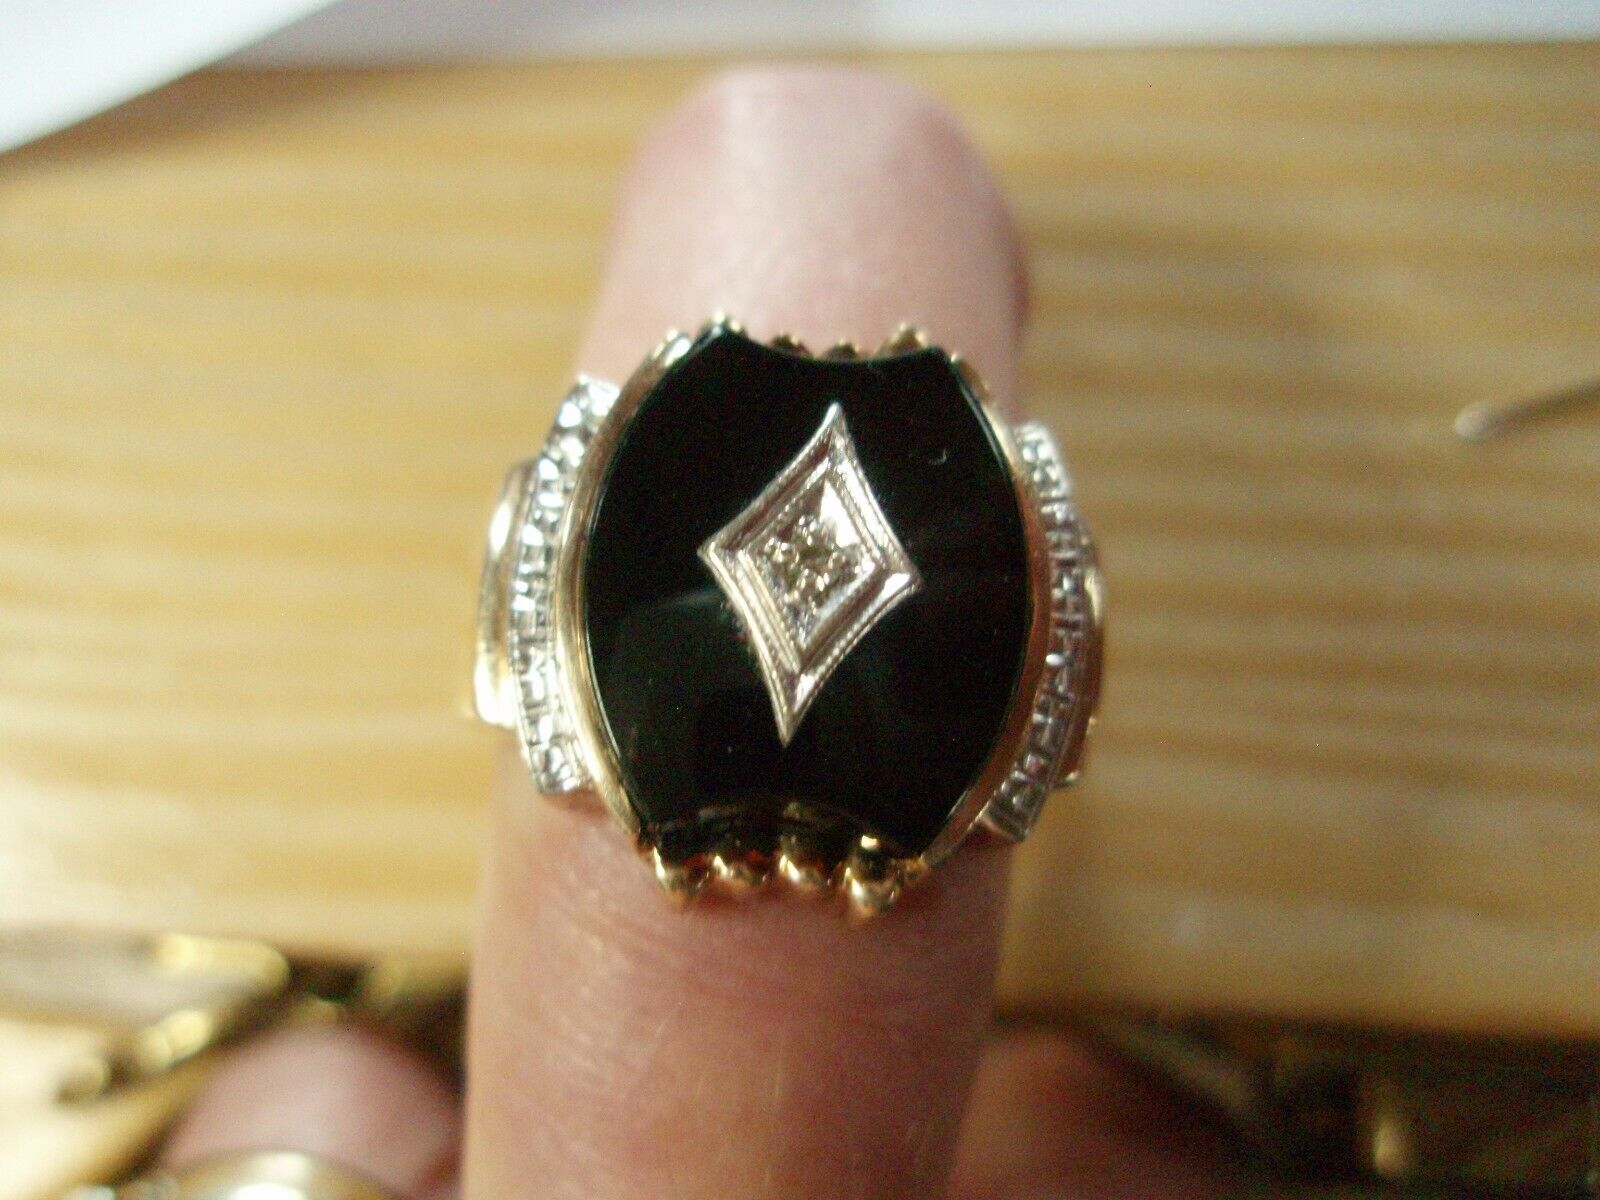 Heavy 8g Unisex 10K 2-Tone Gold Ring Solitaire On… - image 9